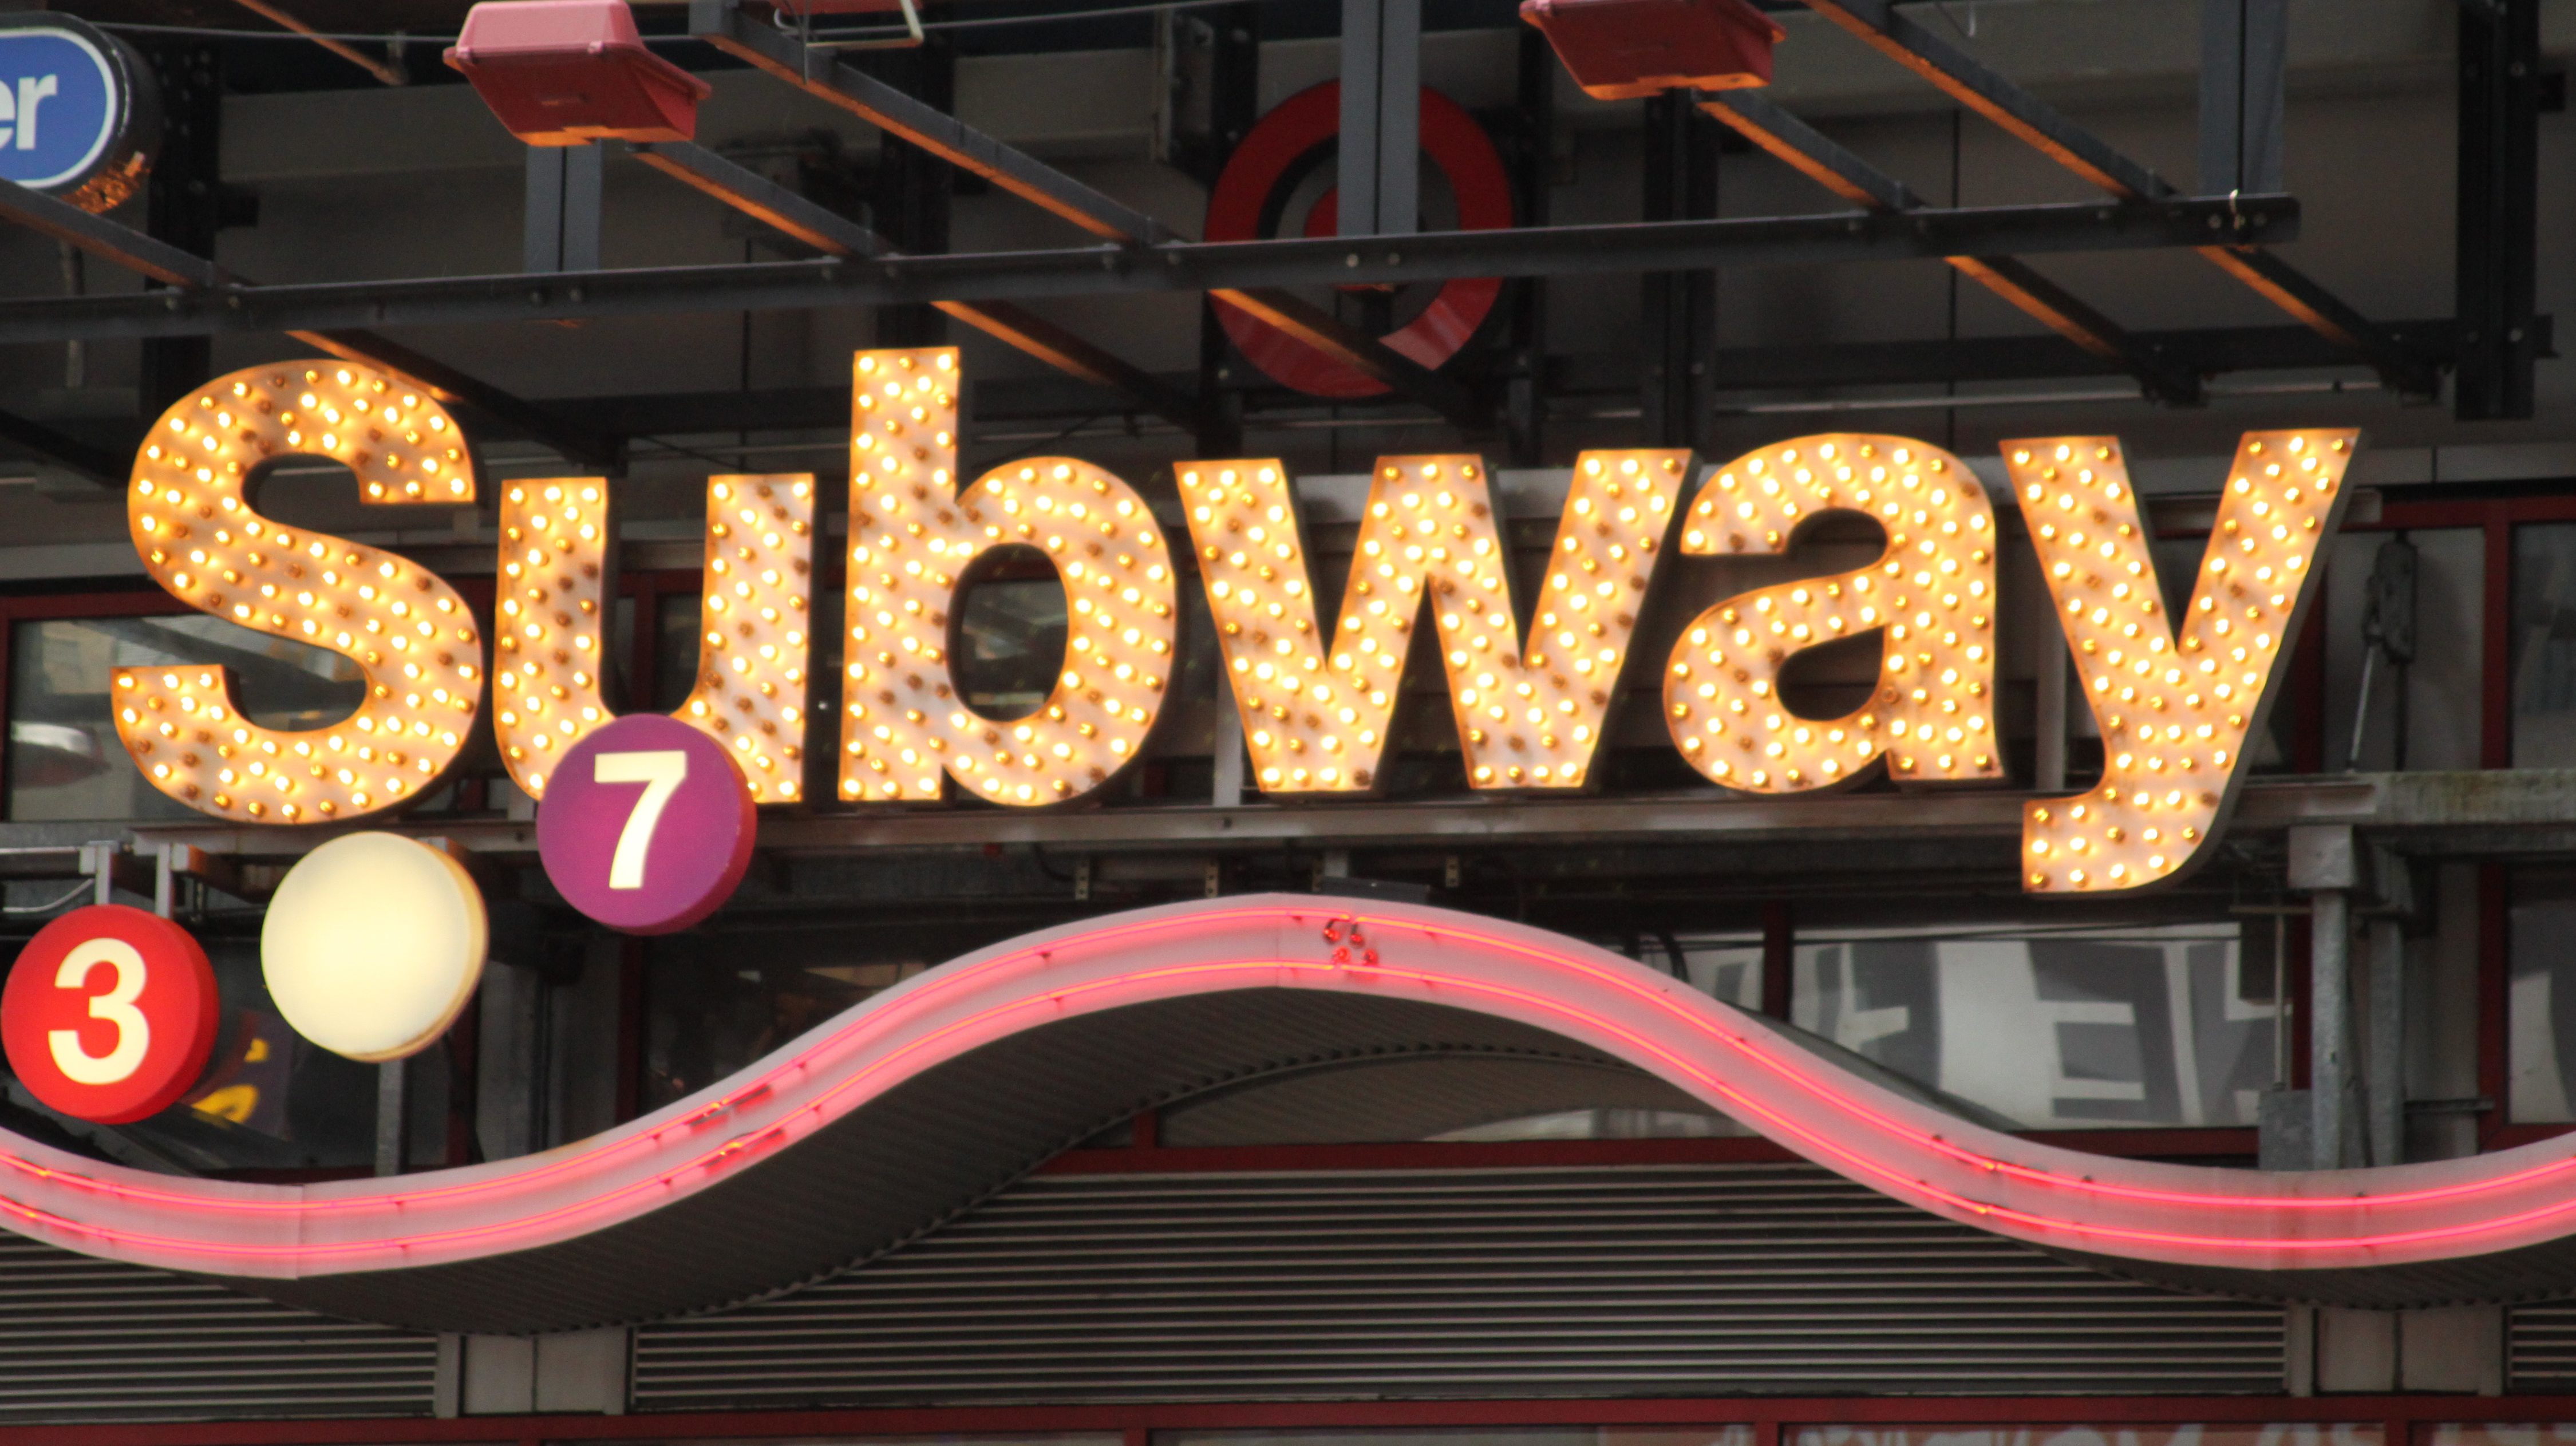 Entrance to the Times Square Subway Station